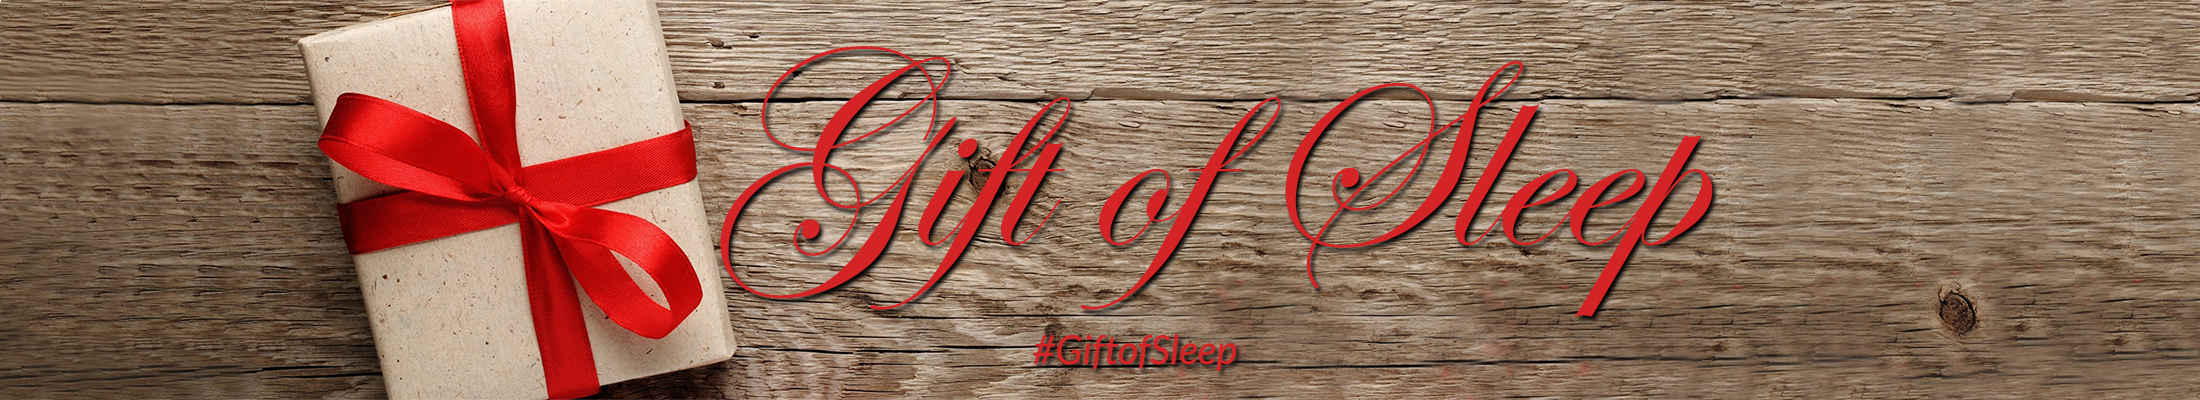 Gift-of-Sleep-header